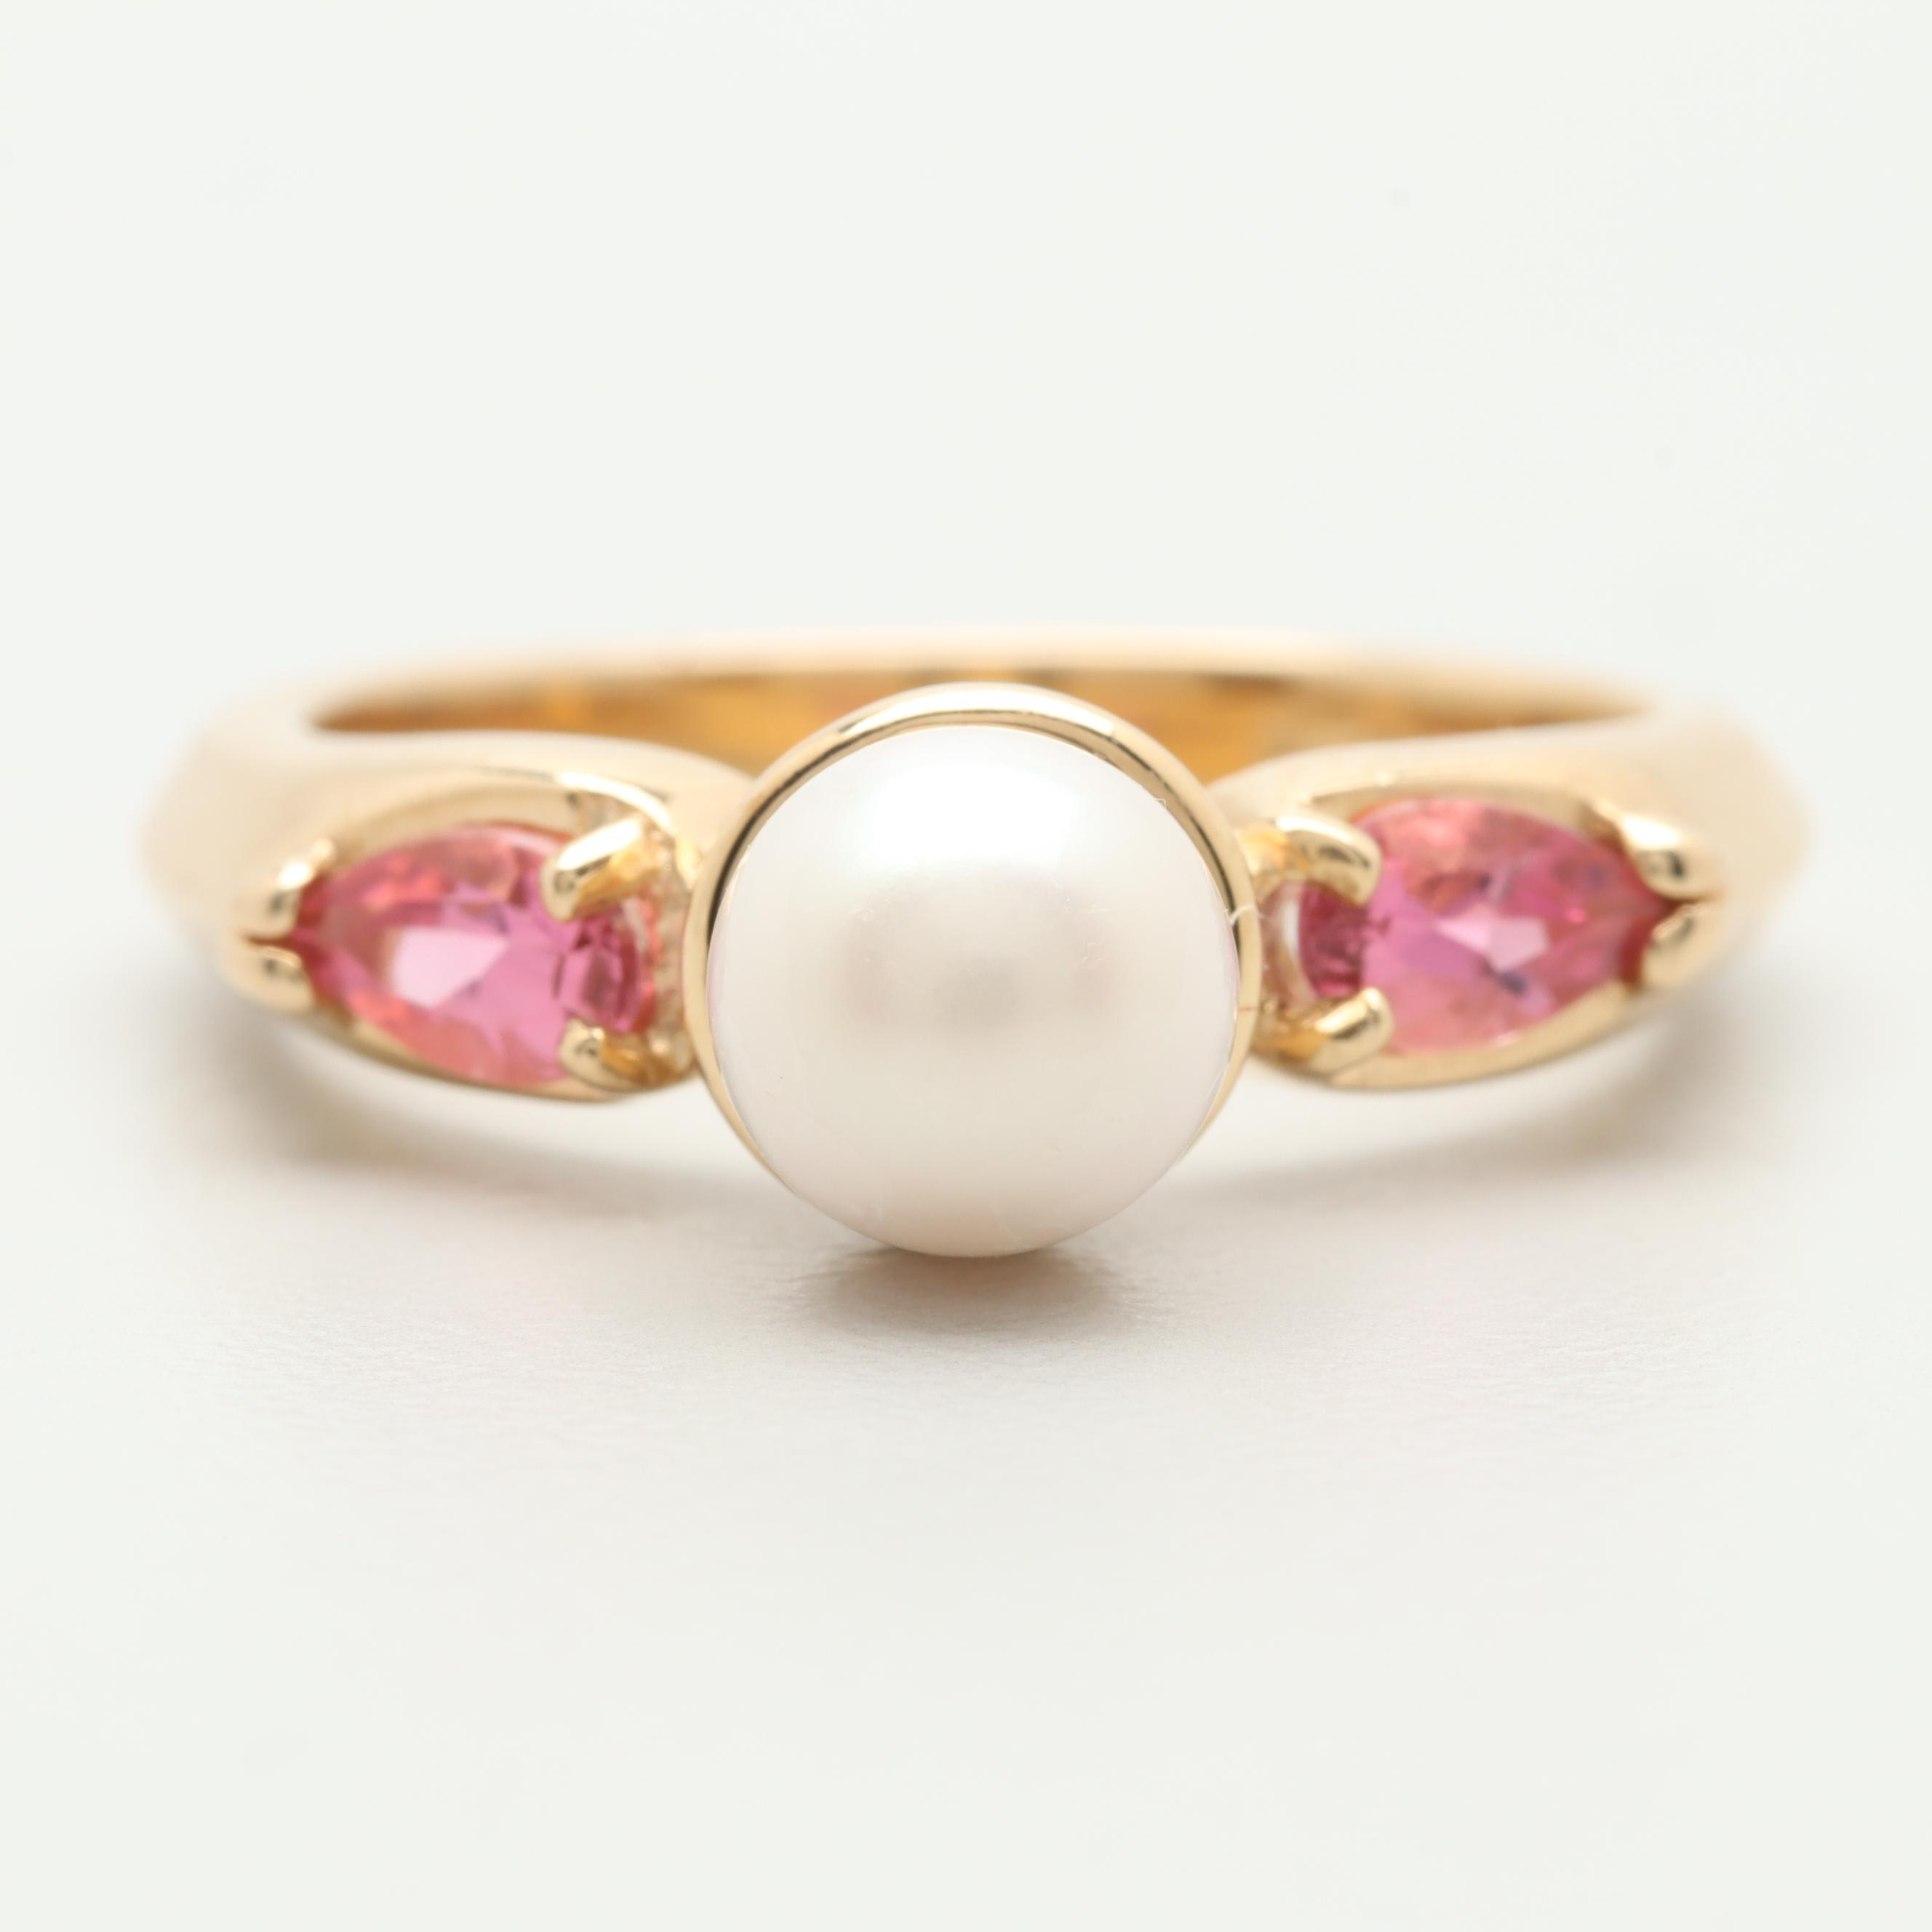 14K Yellow Gold Cultured Pearl and Pink Tourmaline Ring